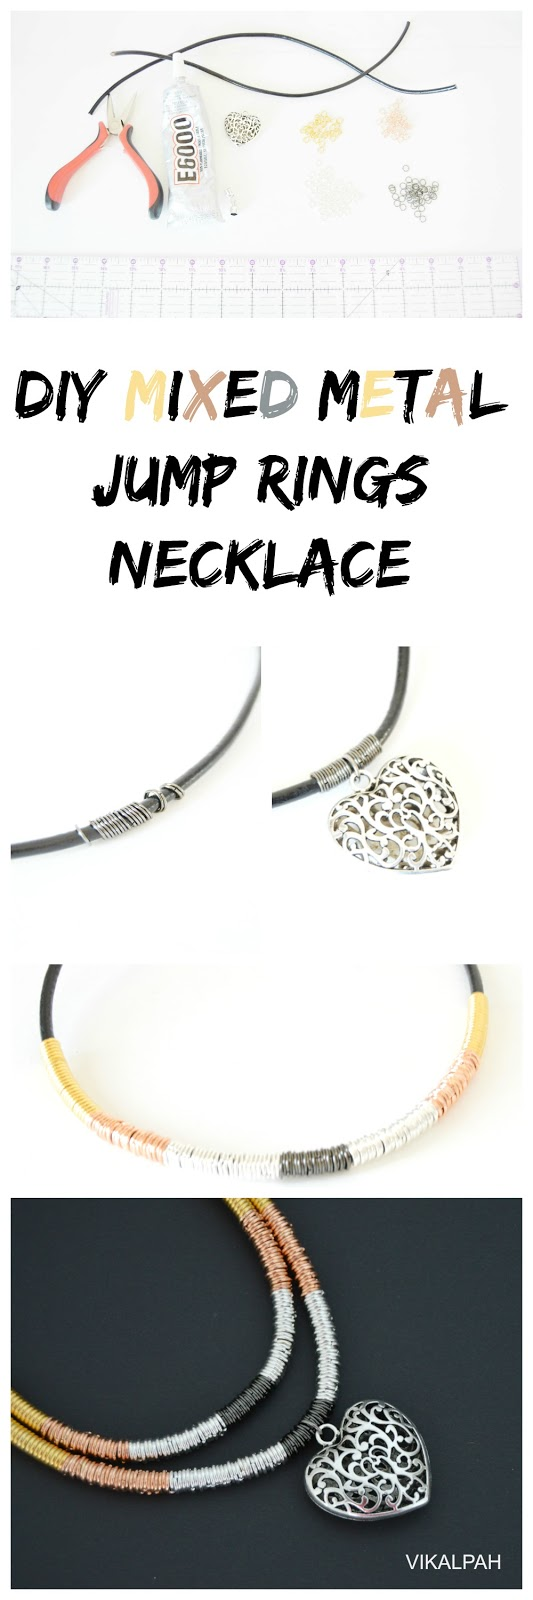 DIY necklace using jump rings